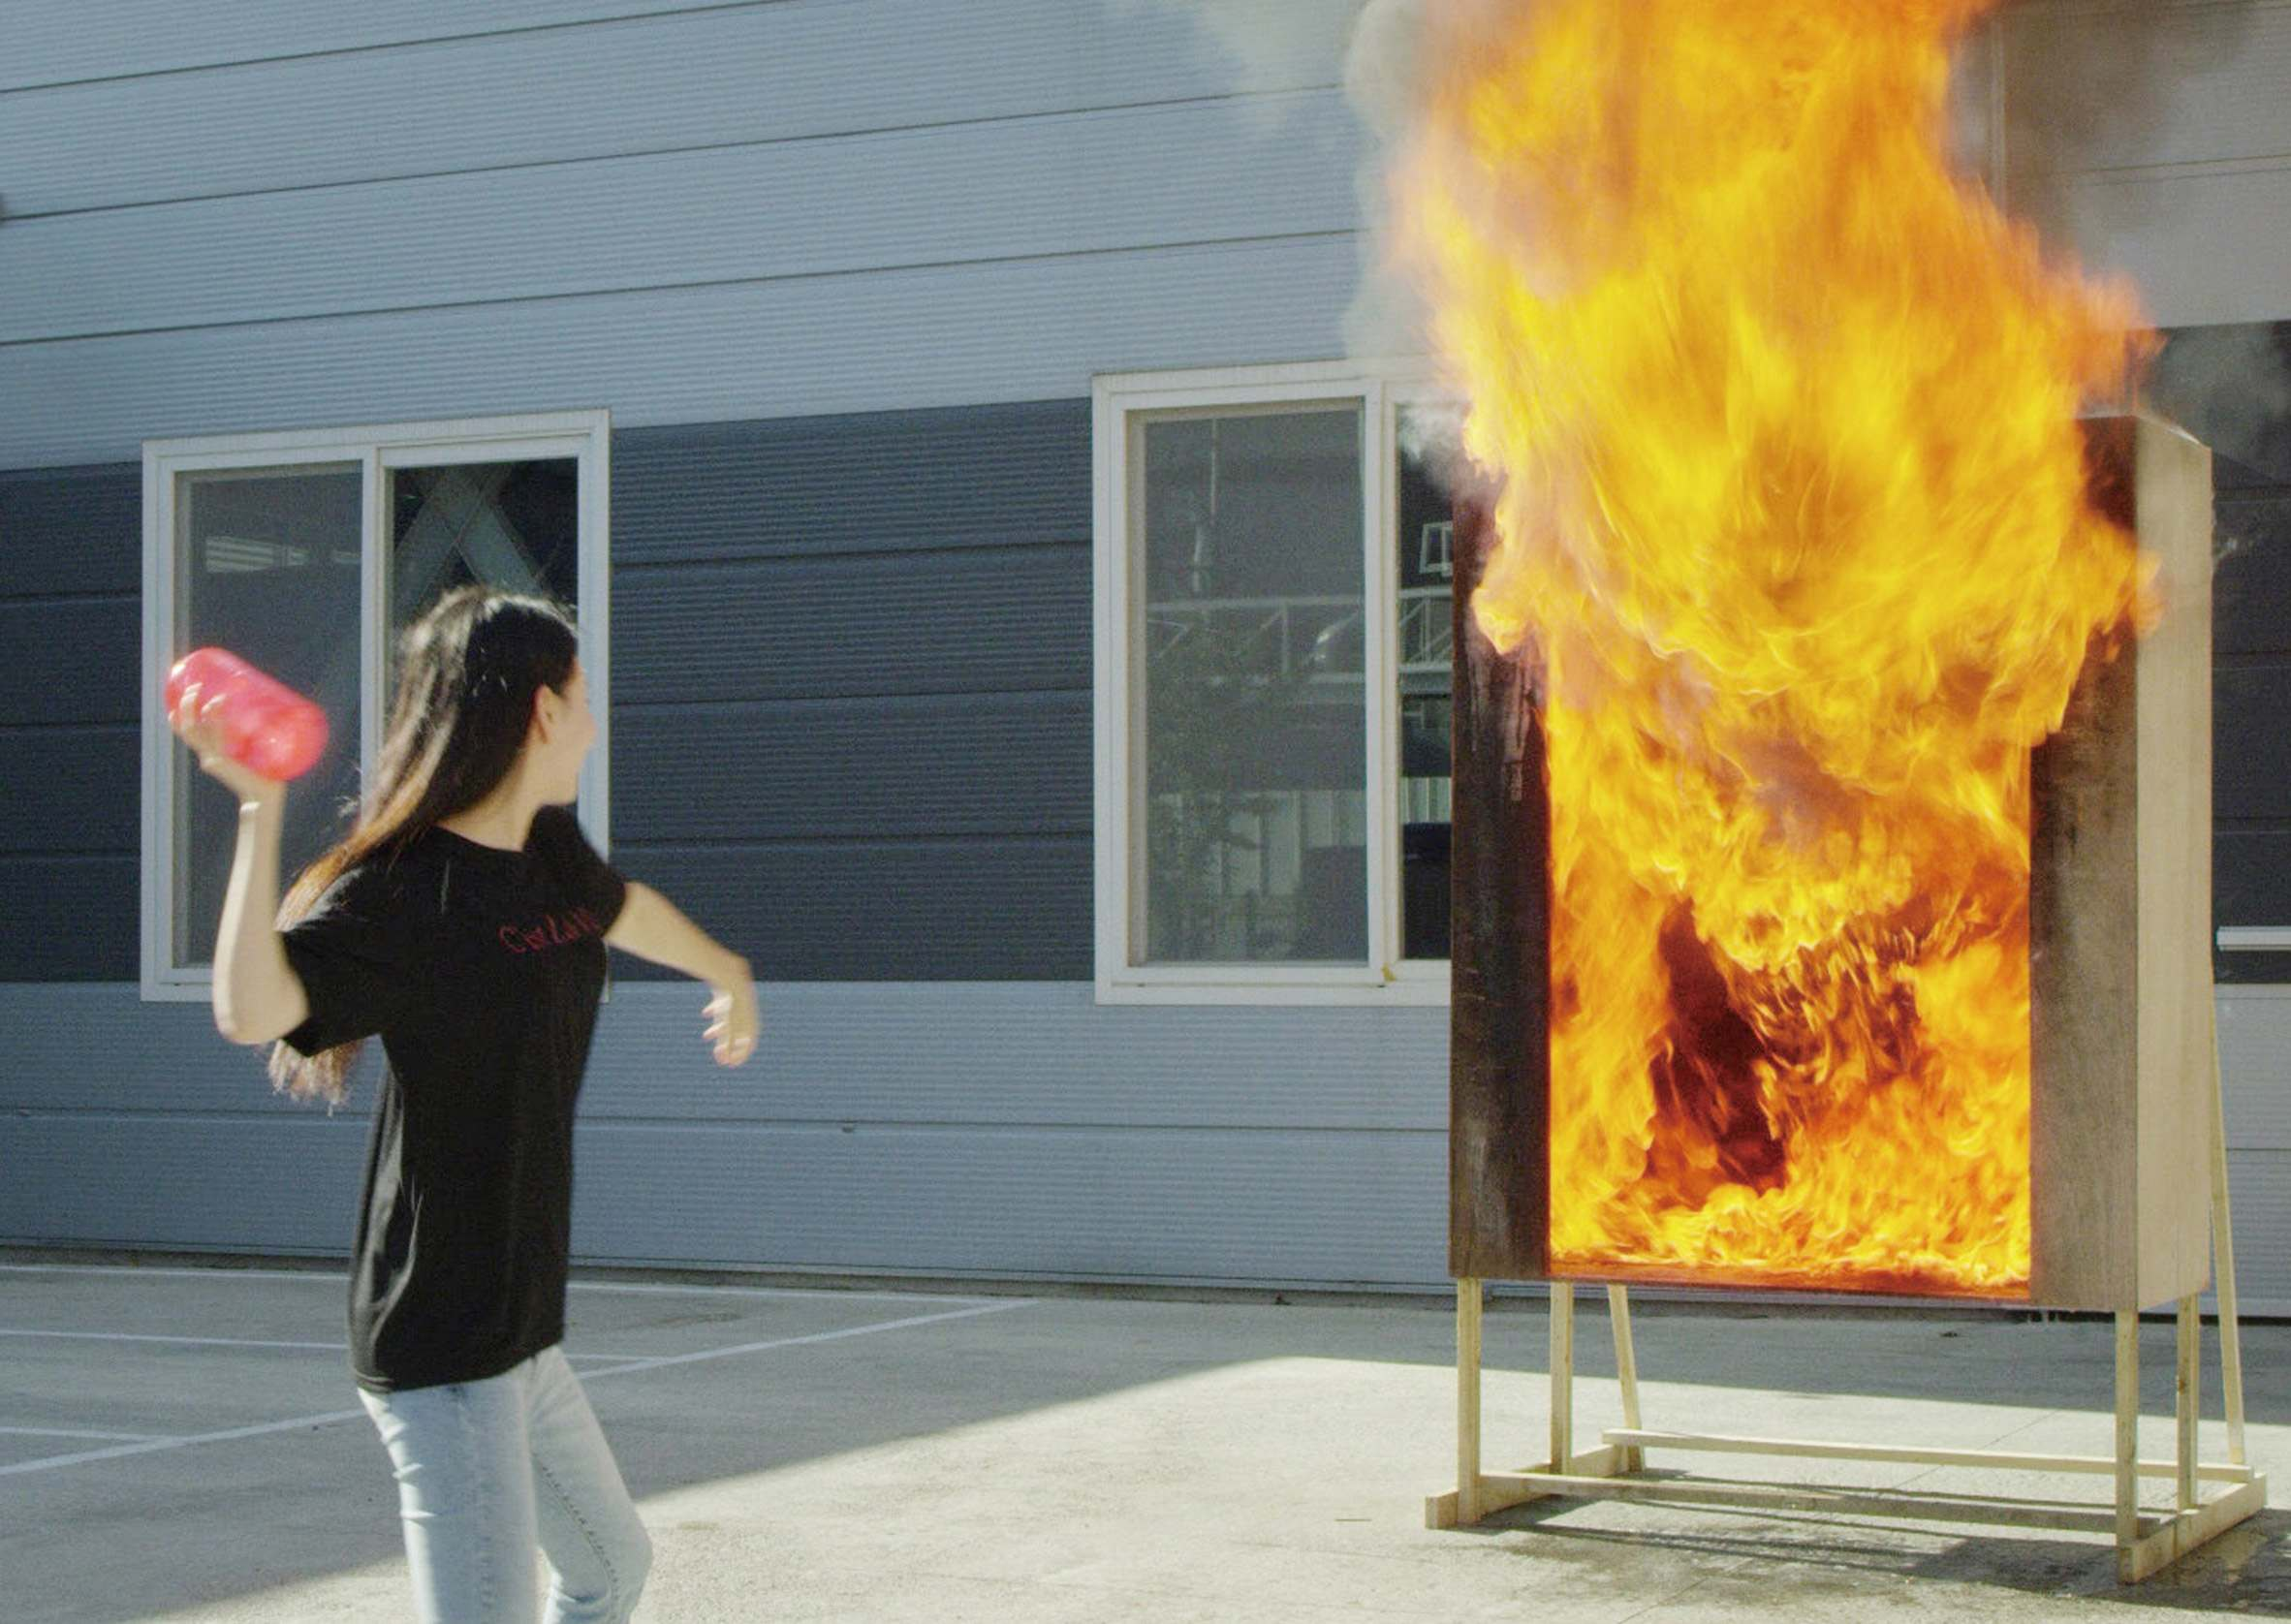 Samsung Fire Amp Marine Insurance Firevase Campaigns Of The World